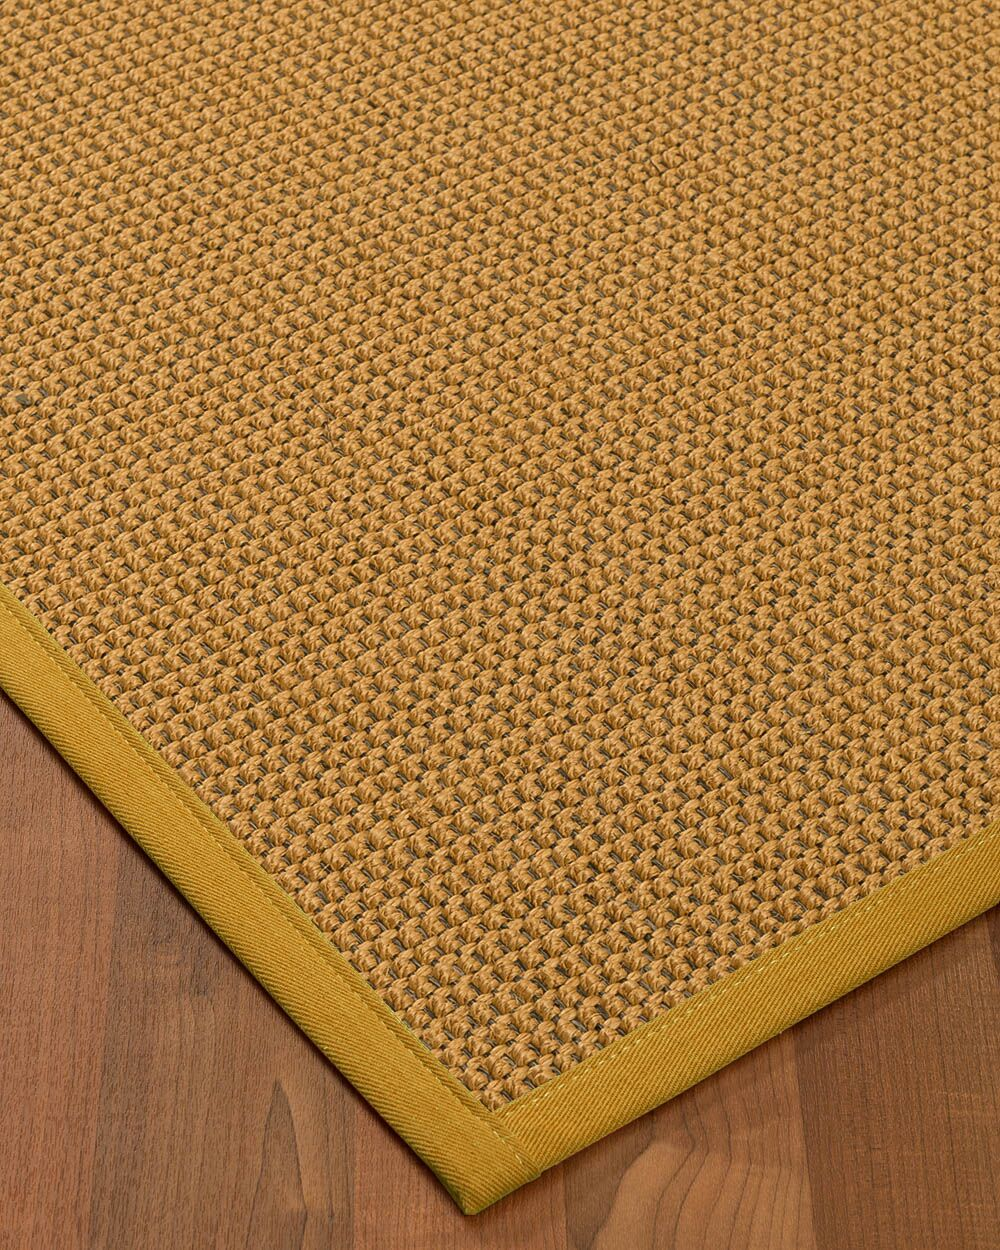 Atia Border Hand-Woven Beige/Tan Area Rug Rug Size: Rectangle 12' x 15', Rug Pad Included: Yes